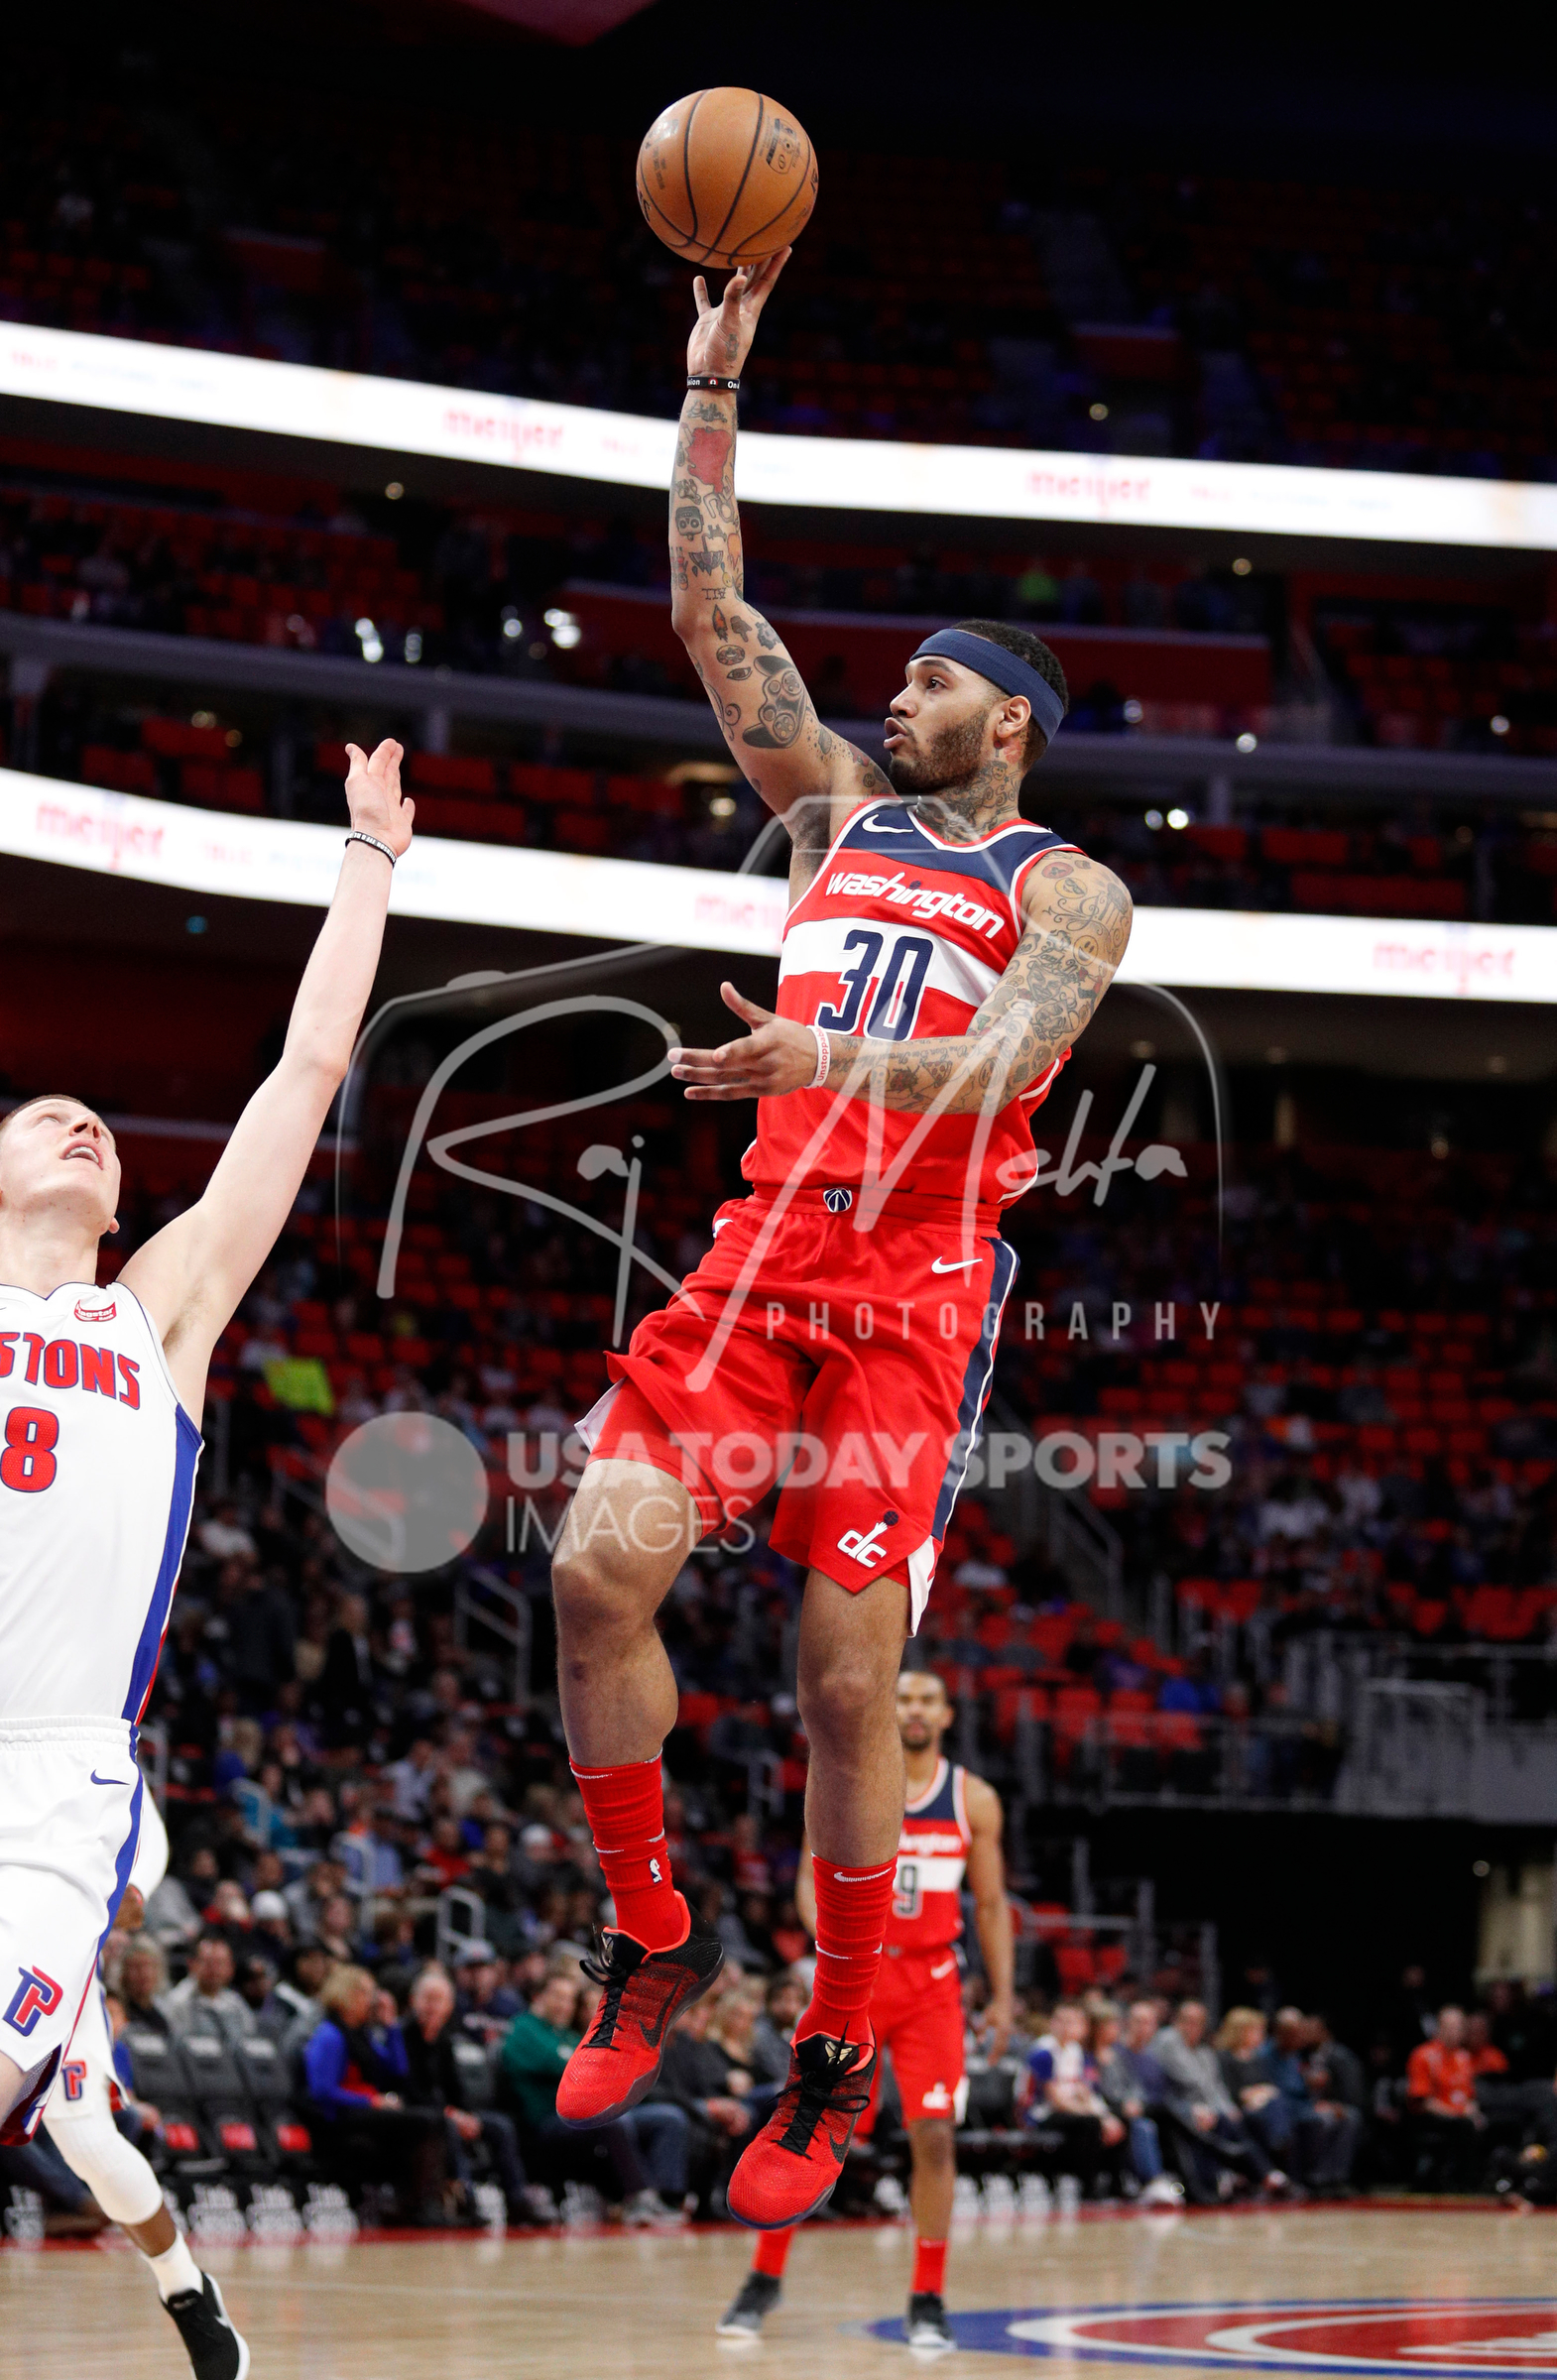 Mar 29, 2018; Detroit, MI, USA; Washington Wizards forward Mike Scott (30) takes a shot over Detroit Pistons forward Henry Ellenson (8) during the second quarter at Little Caesars Arena. Mandatory Credit: Raj Mehta-USA TODAY Sports